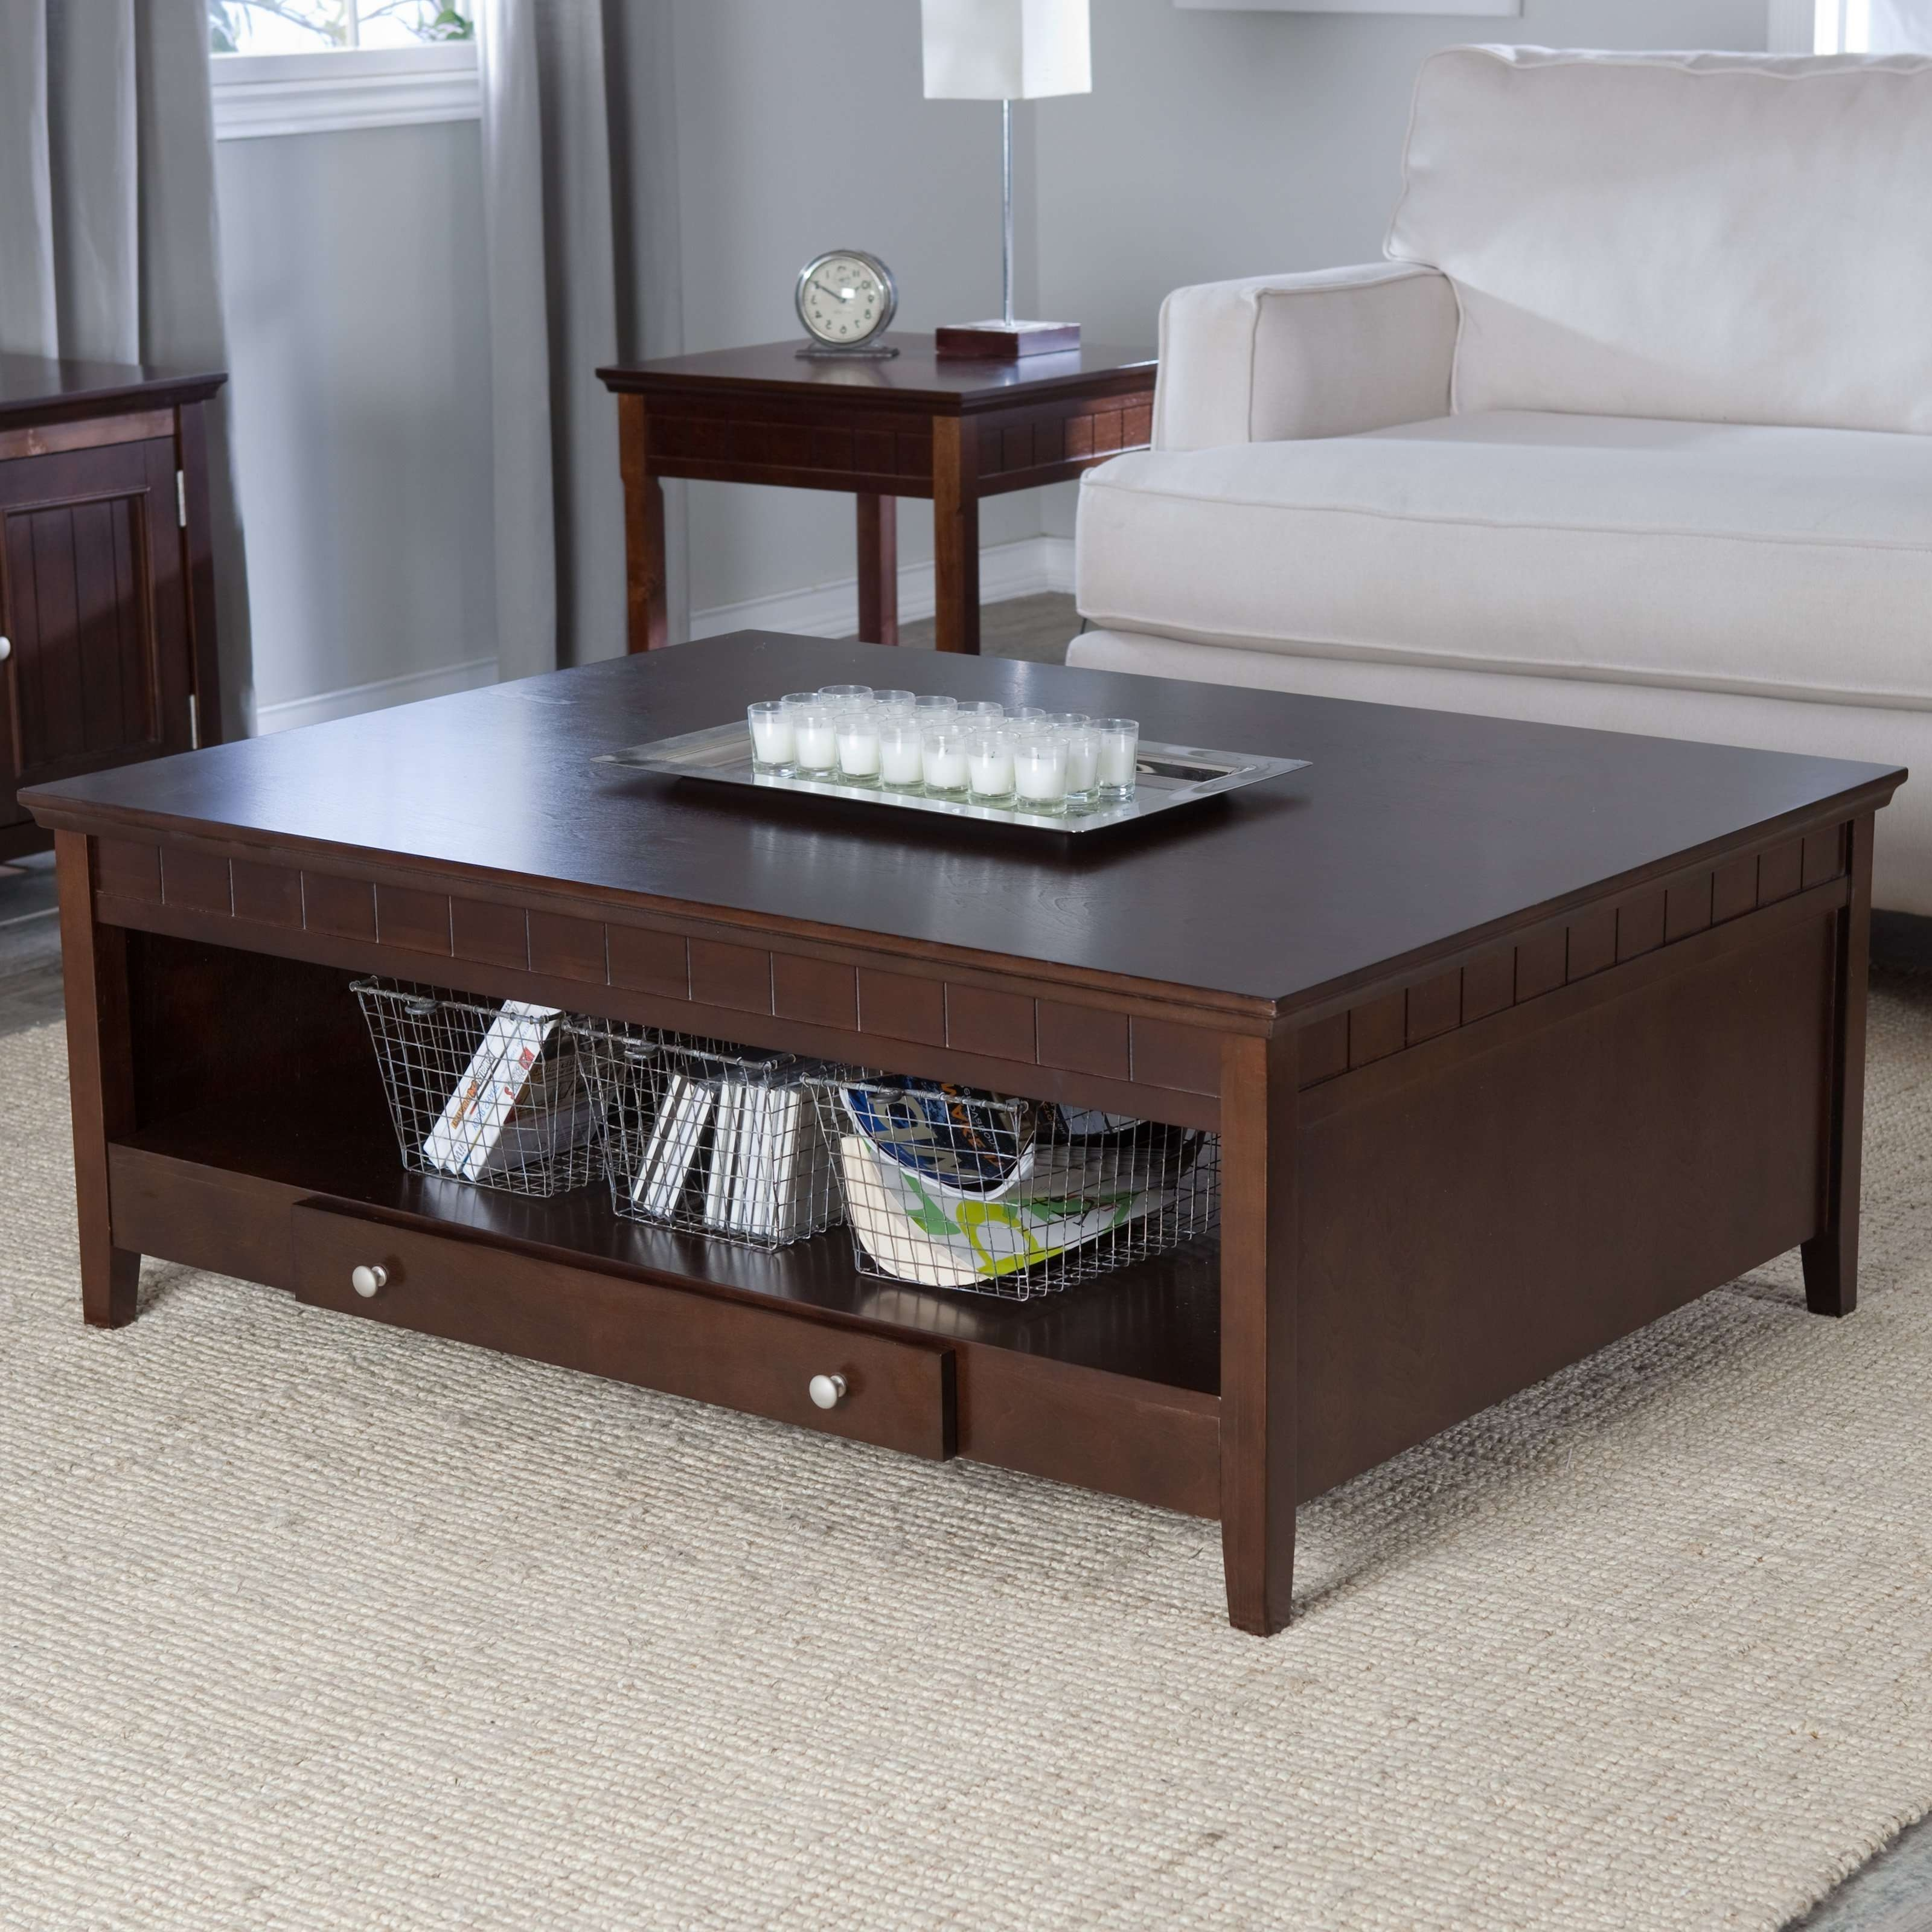 Widely Used Coffee Table With Chairs For Coffee Tables : Patio Table Chairs High Top Furniture Couch Set (View 19 of 20)